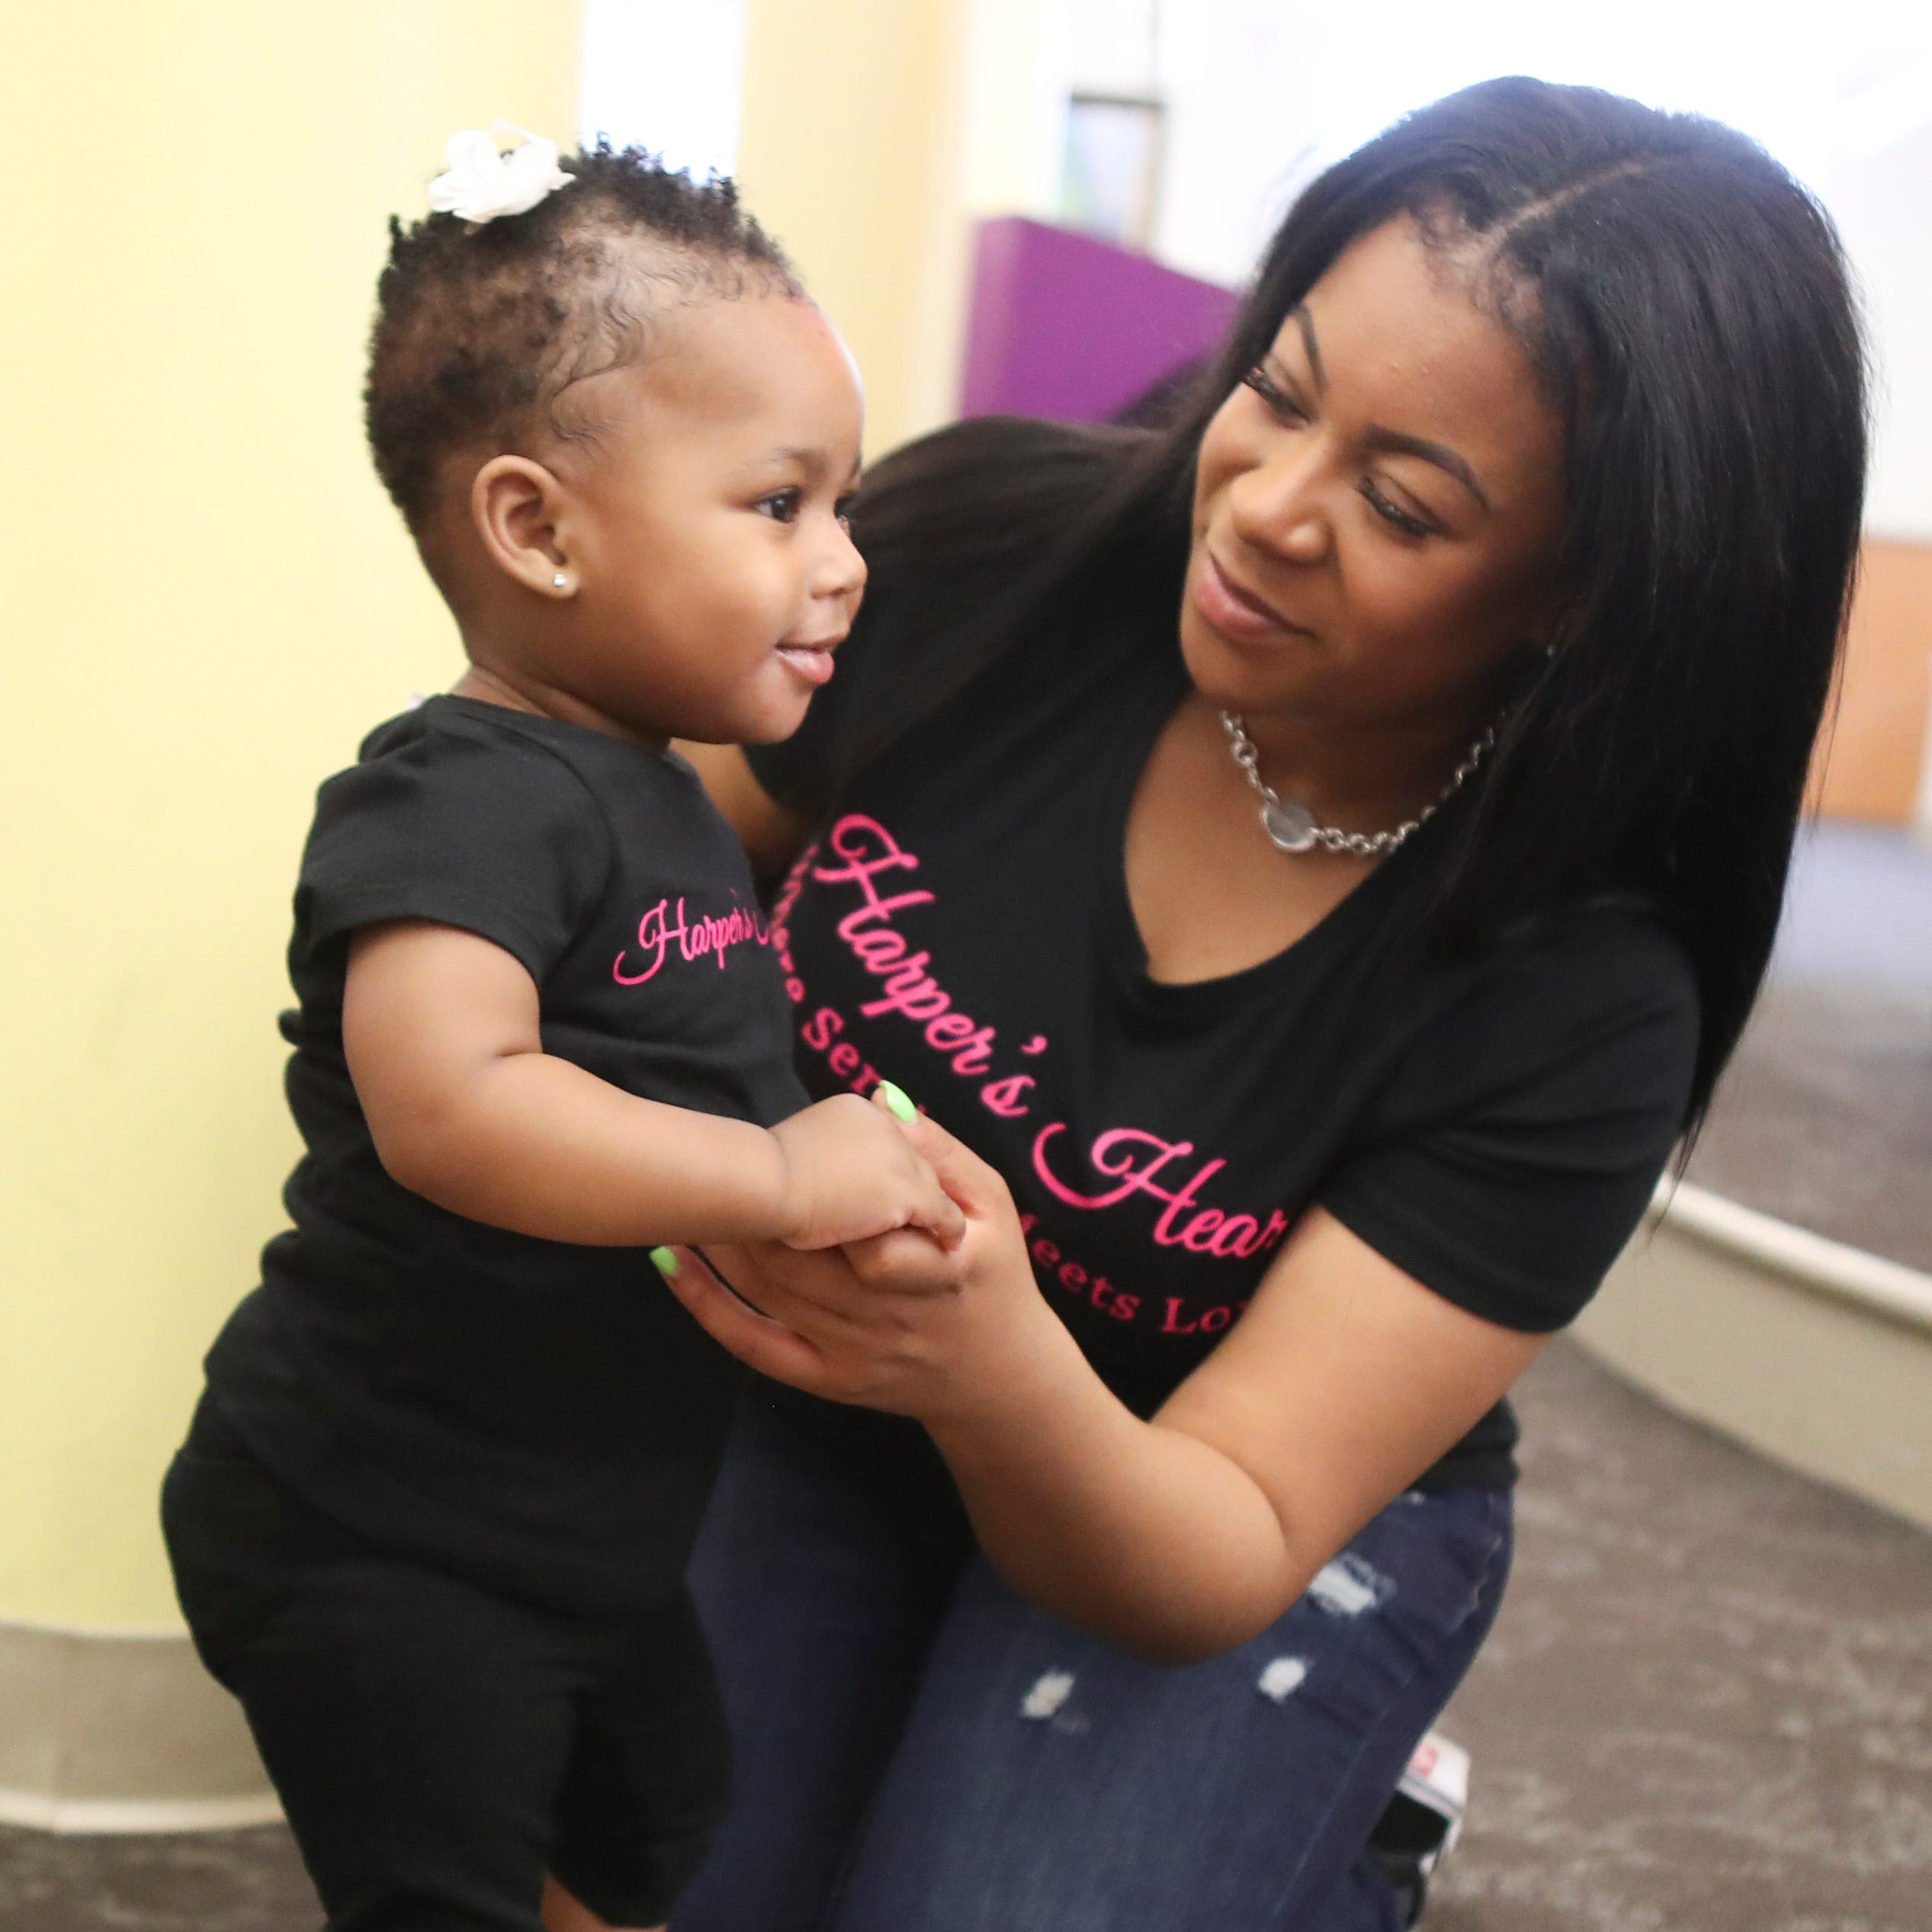 Once a single mother in crisis, Giovanna Andrews now helps other moms in need